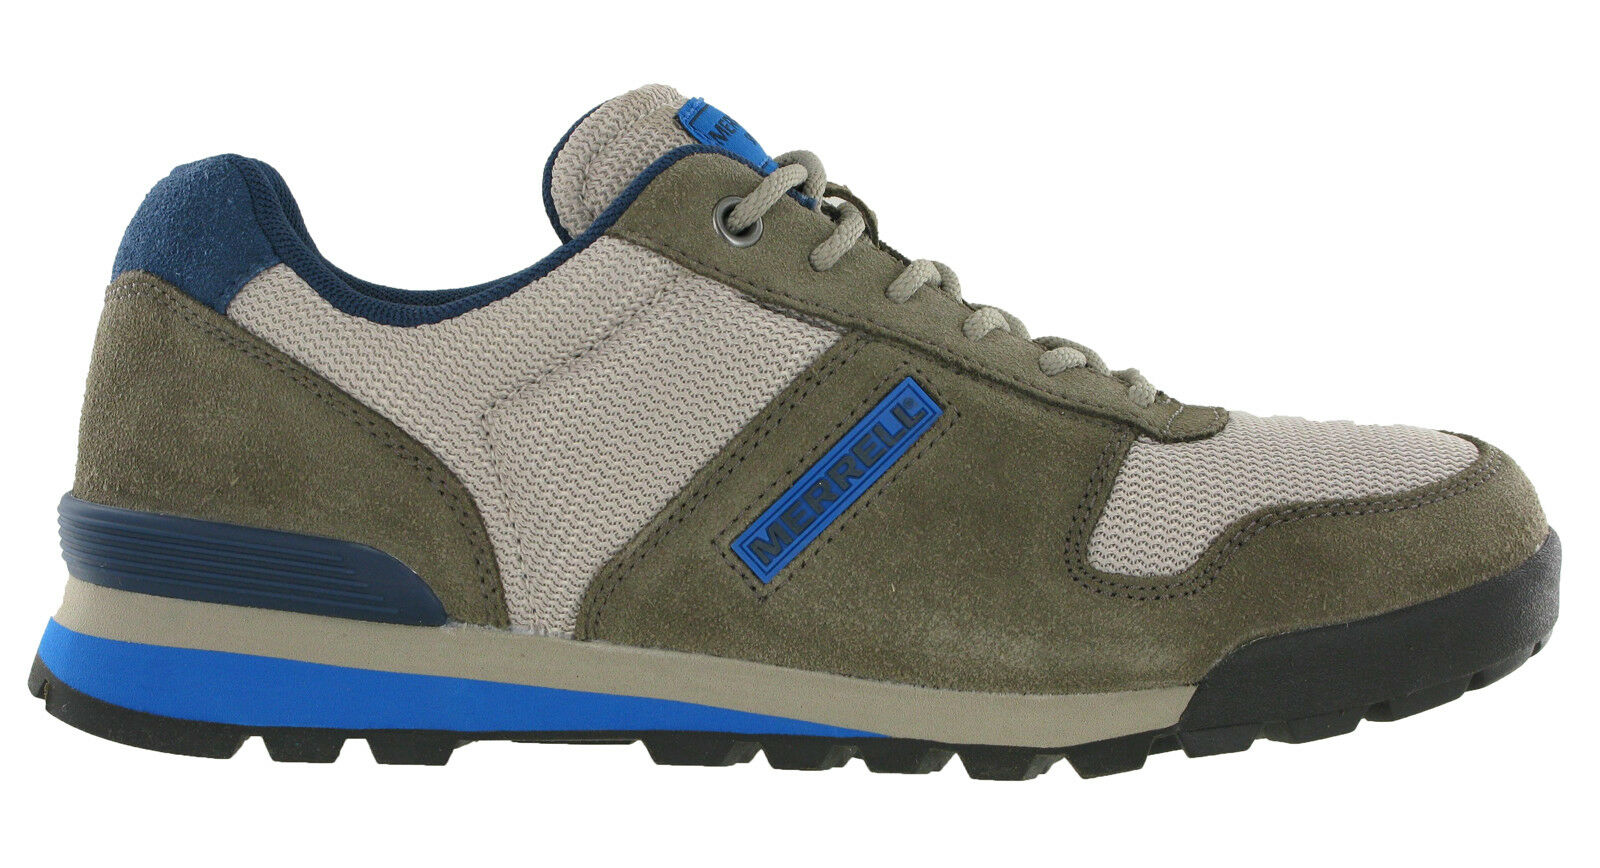 Merrell Solo Trainers Mens Casual Walking Hiking Leather Leather Leather Suede Padded Lace schuhe 276bbd